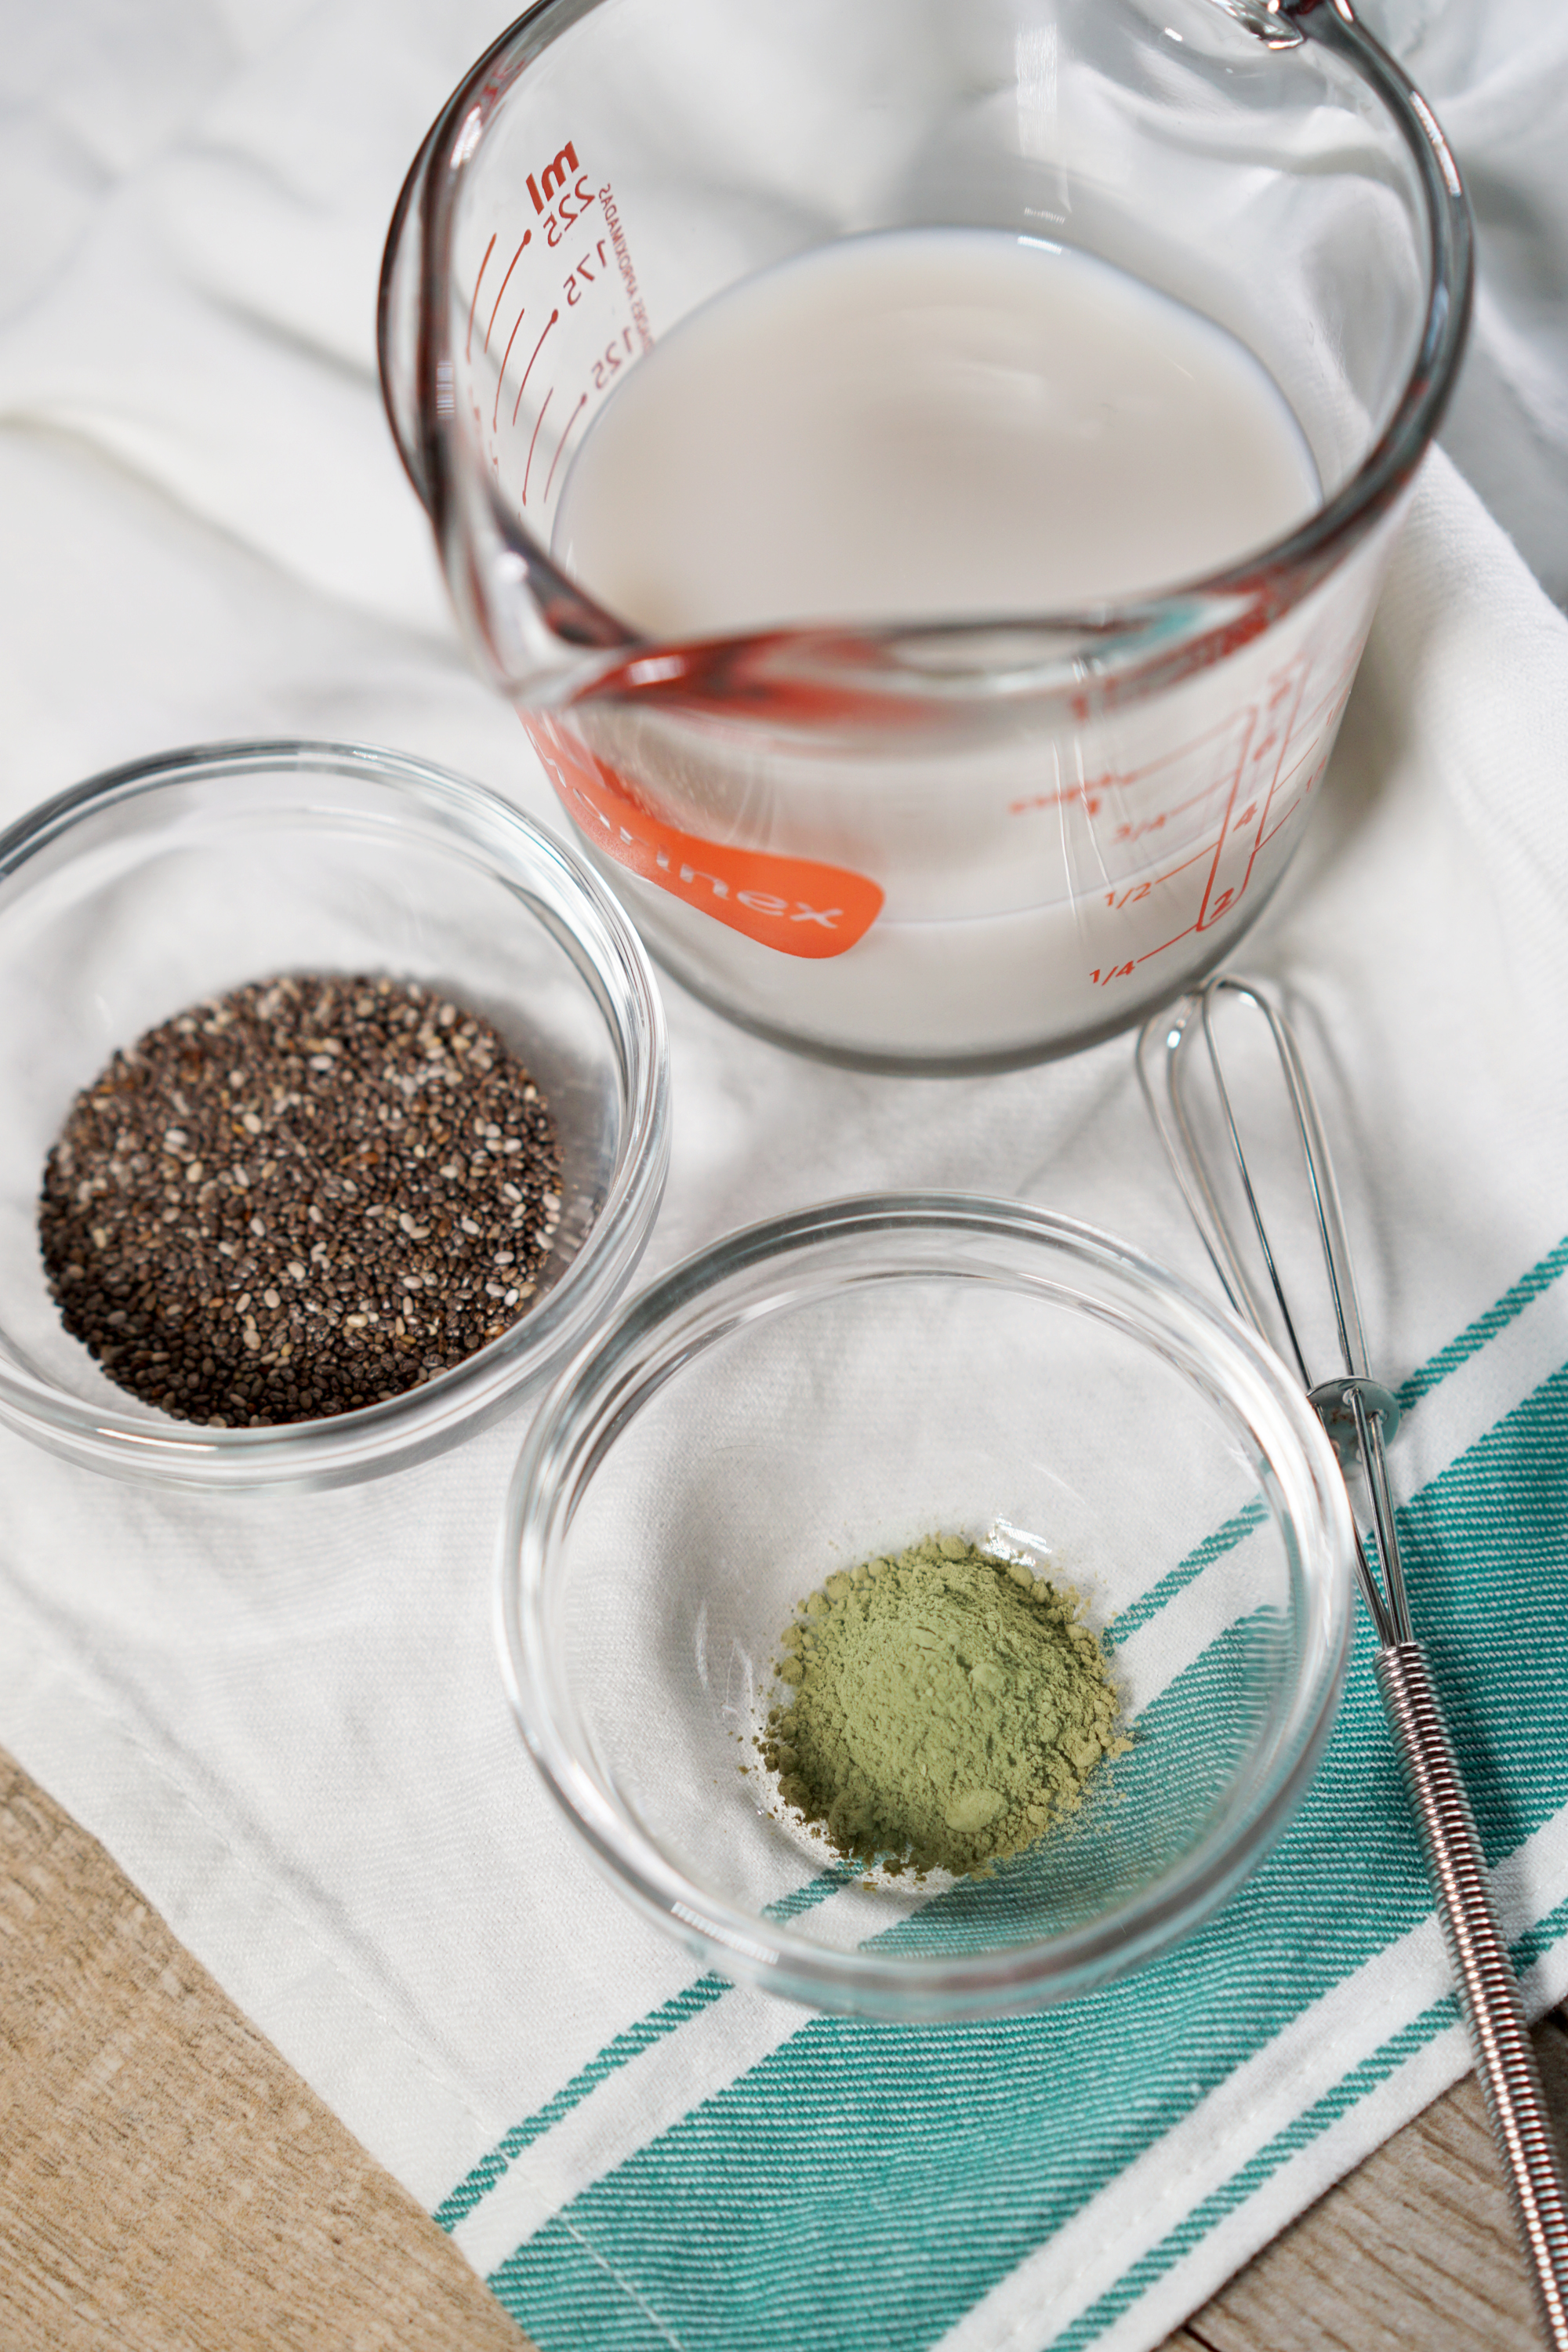 Matcha Chia Pudding Recipe by Broke and Cooking - www.brokeandcooking.com